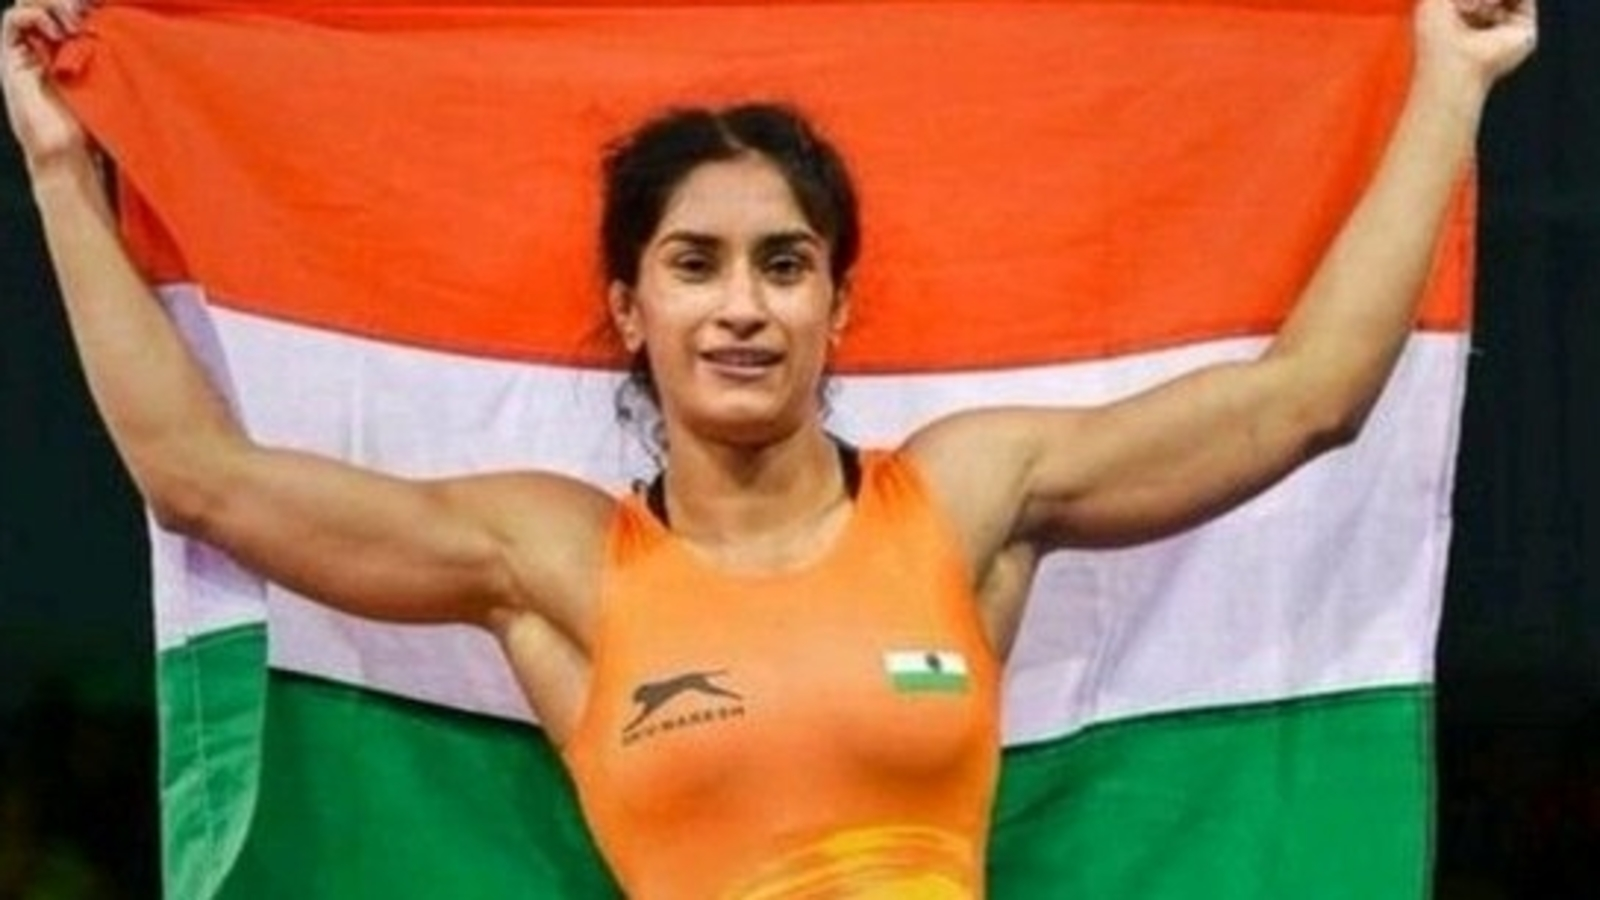 Is it a crime to ask for one Physiotherapist': Vinesh Phogat tweets responding to media report   Olympics - Hindustan Times